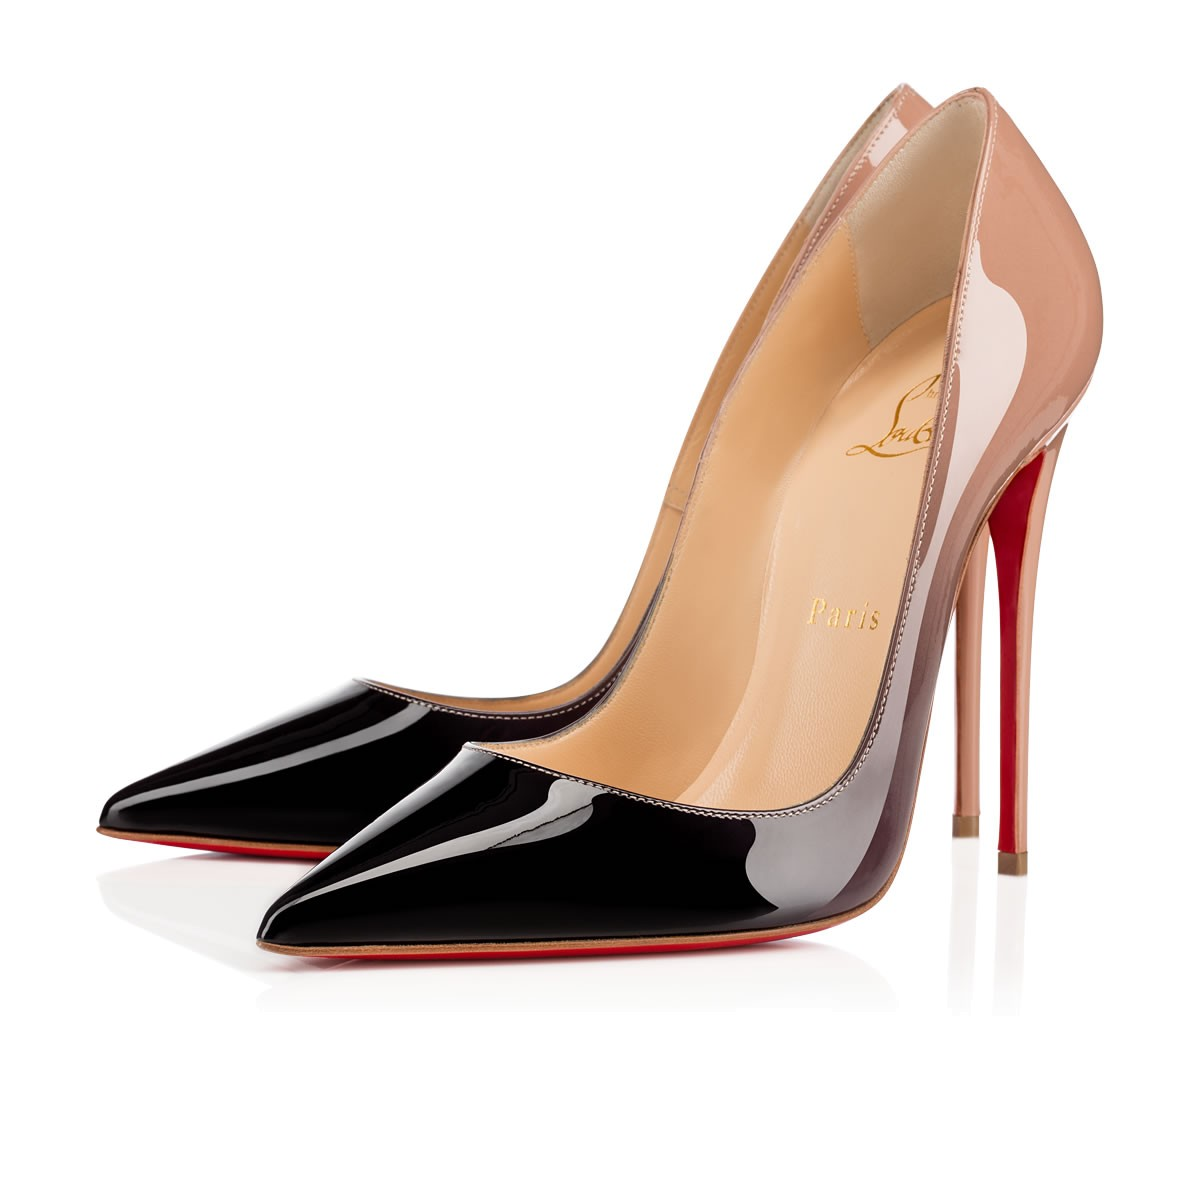 a06b36368d18 CHRISTIAN LOUBOUTIN DECOLLETE 554 85MM NUDE PATENT LEATHER